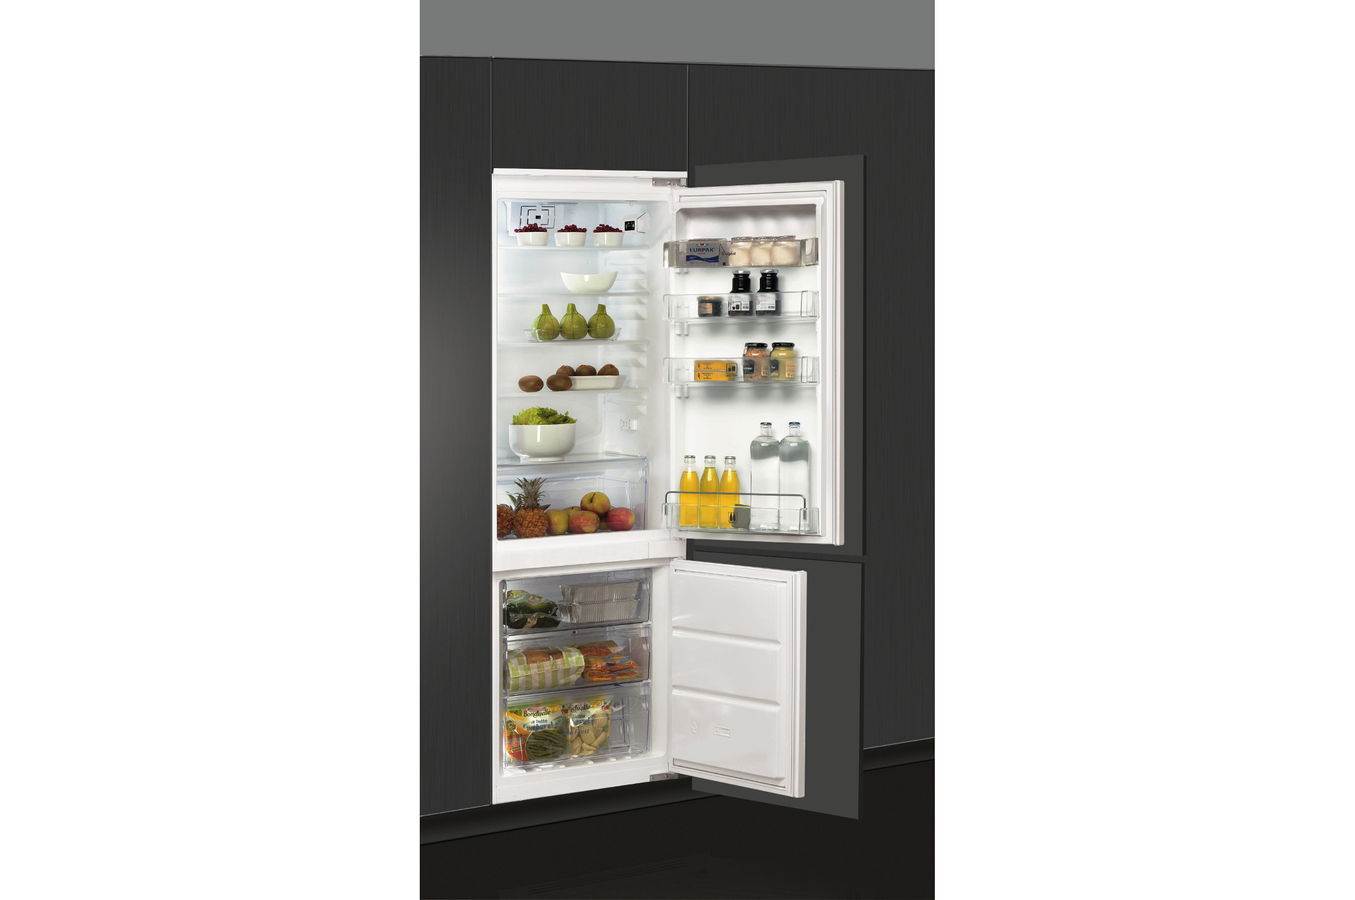 refrigerateur congelateur encastrable whirlpool art872 a nf 4009150 darty. Black Bedroom Furniture Sets. Home Design Ideas